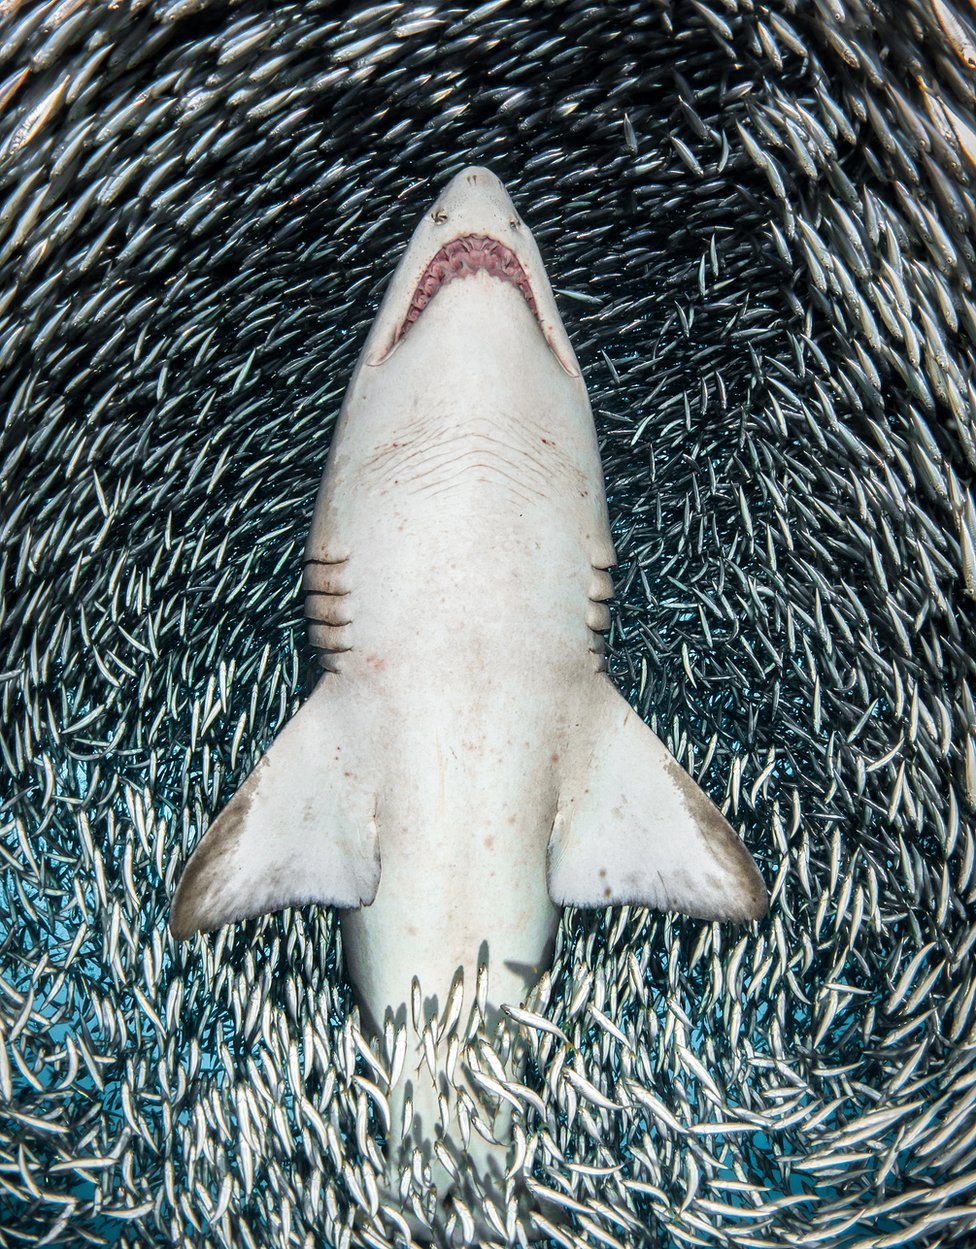 A sand tiger shark surrounded by millions of tiny fish